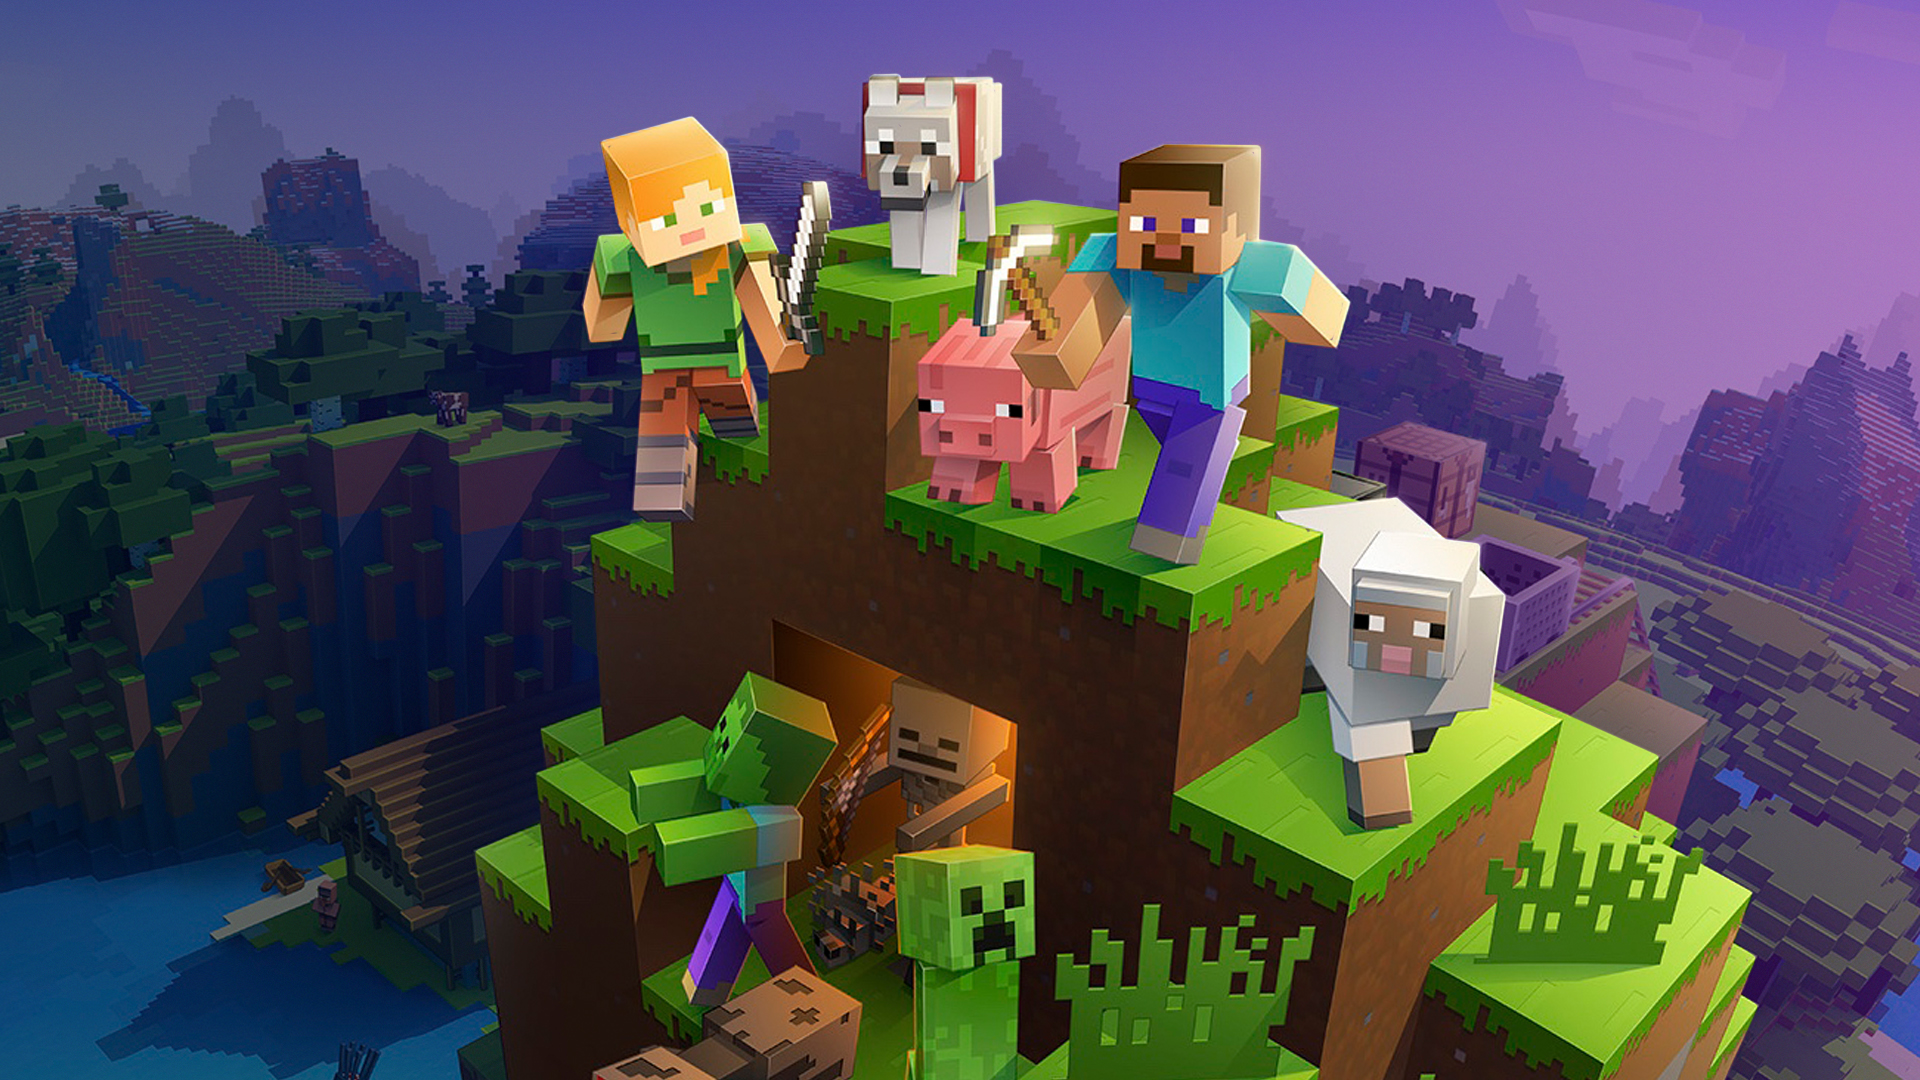 Minecraft's servers aren't shutting down, contrary to internet prank